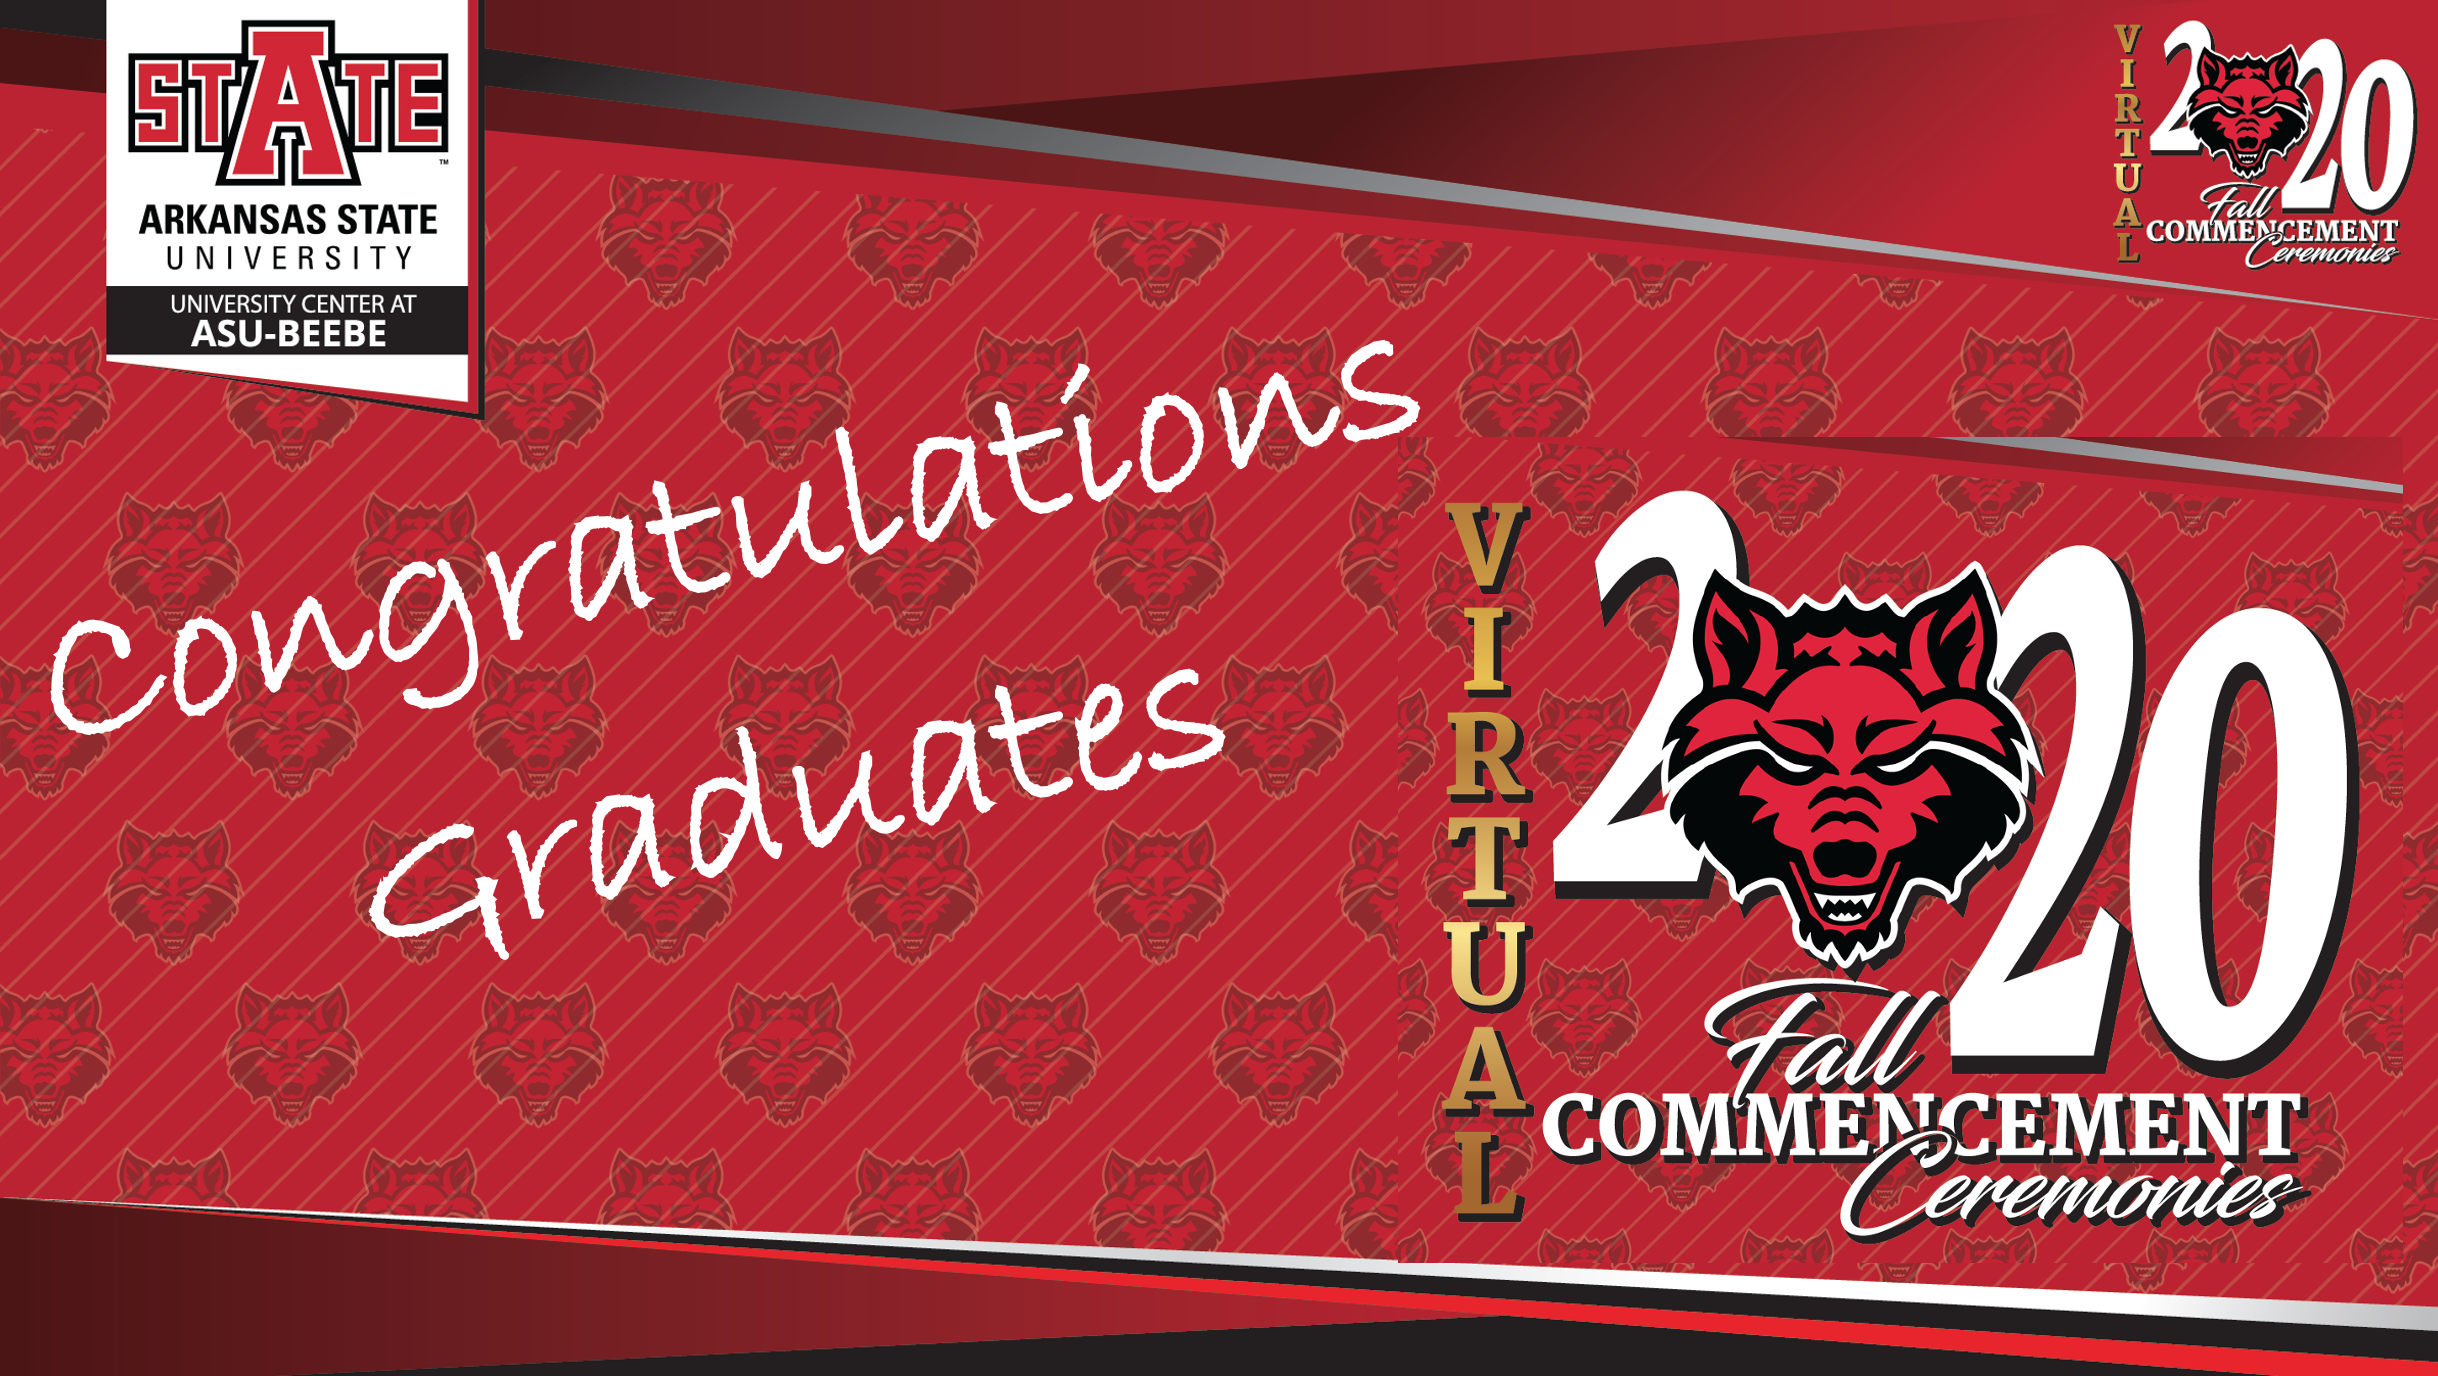 A-State Faculty Congratulations